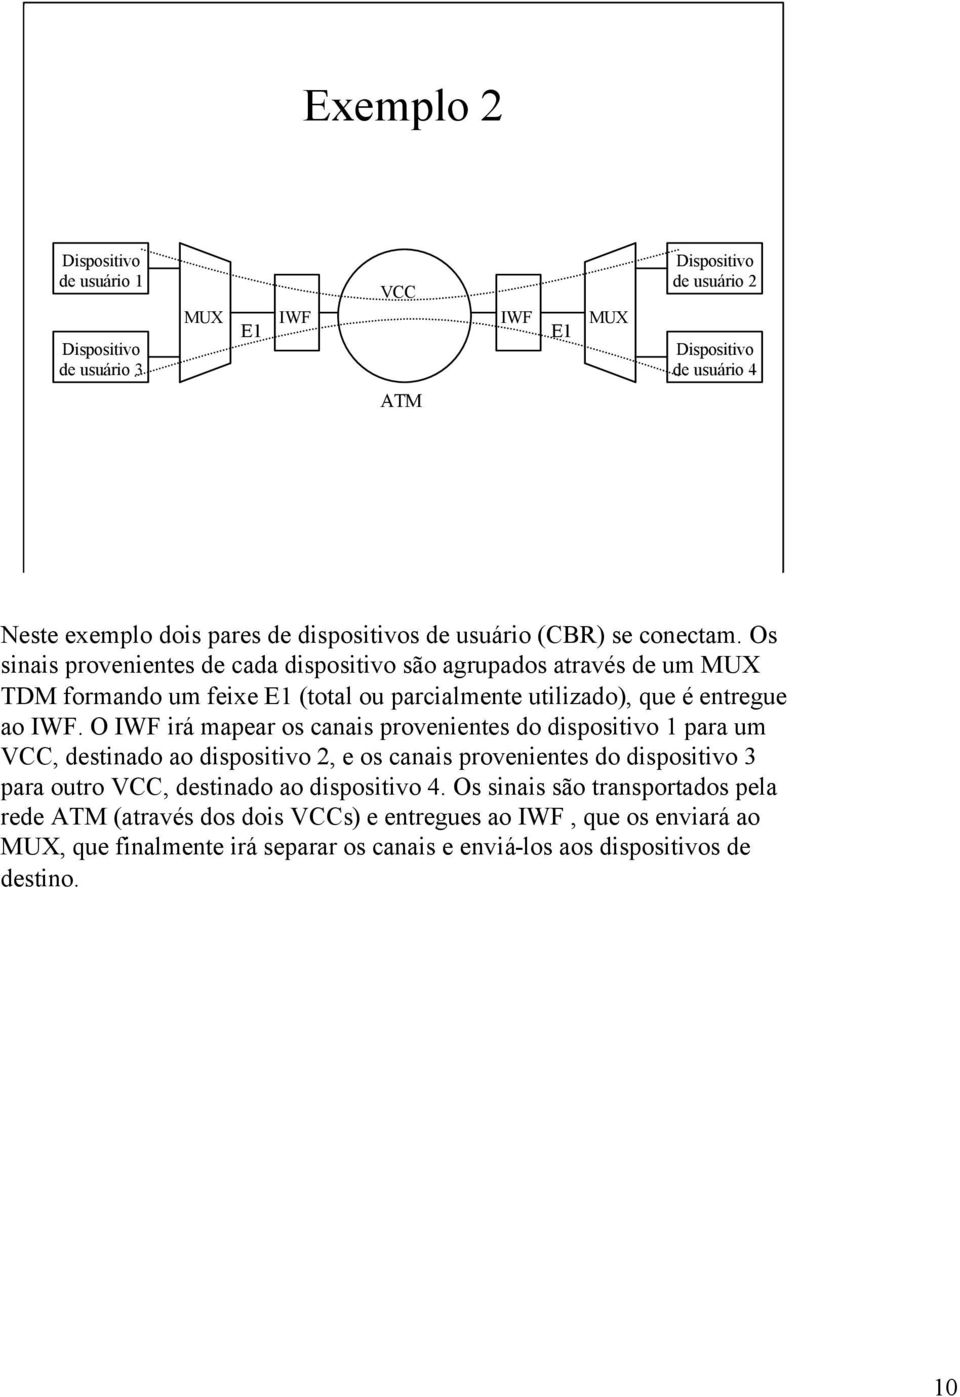 O IWF irá mapear os canais provenientes do dispositivo 1 para um VCC, destinado ao dispositivo 2, e os canais provenientes do dispositivo 3 para outro VCC, destinado ao dispositivo 4.